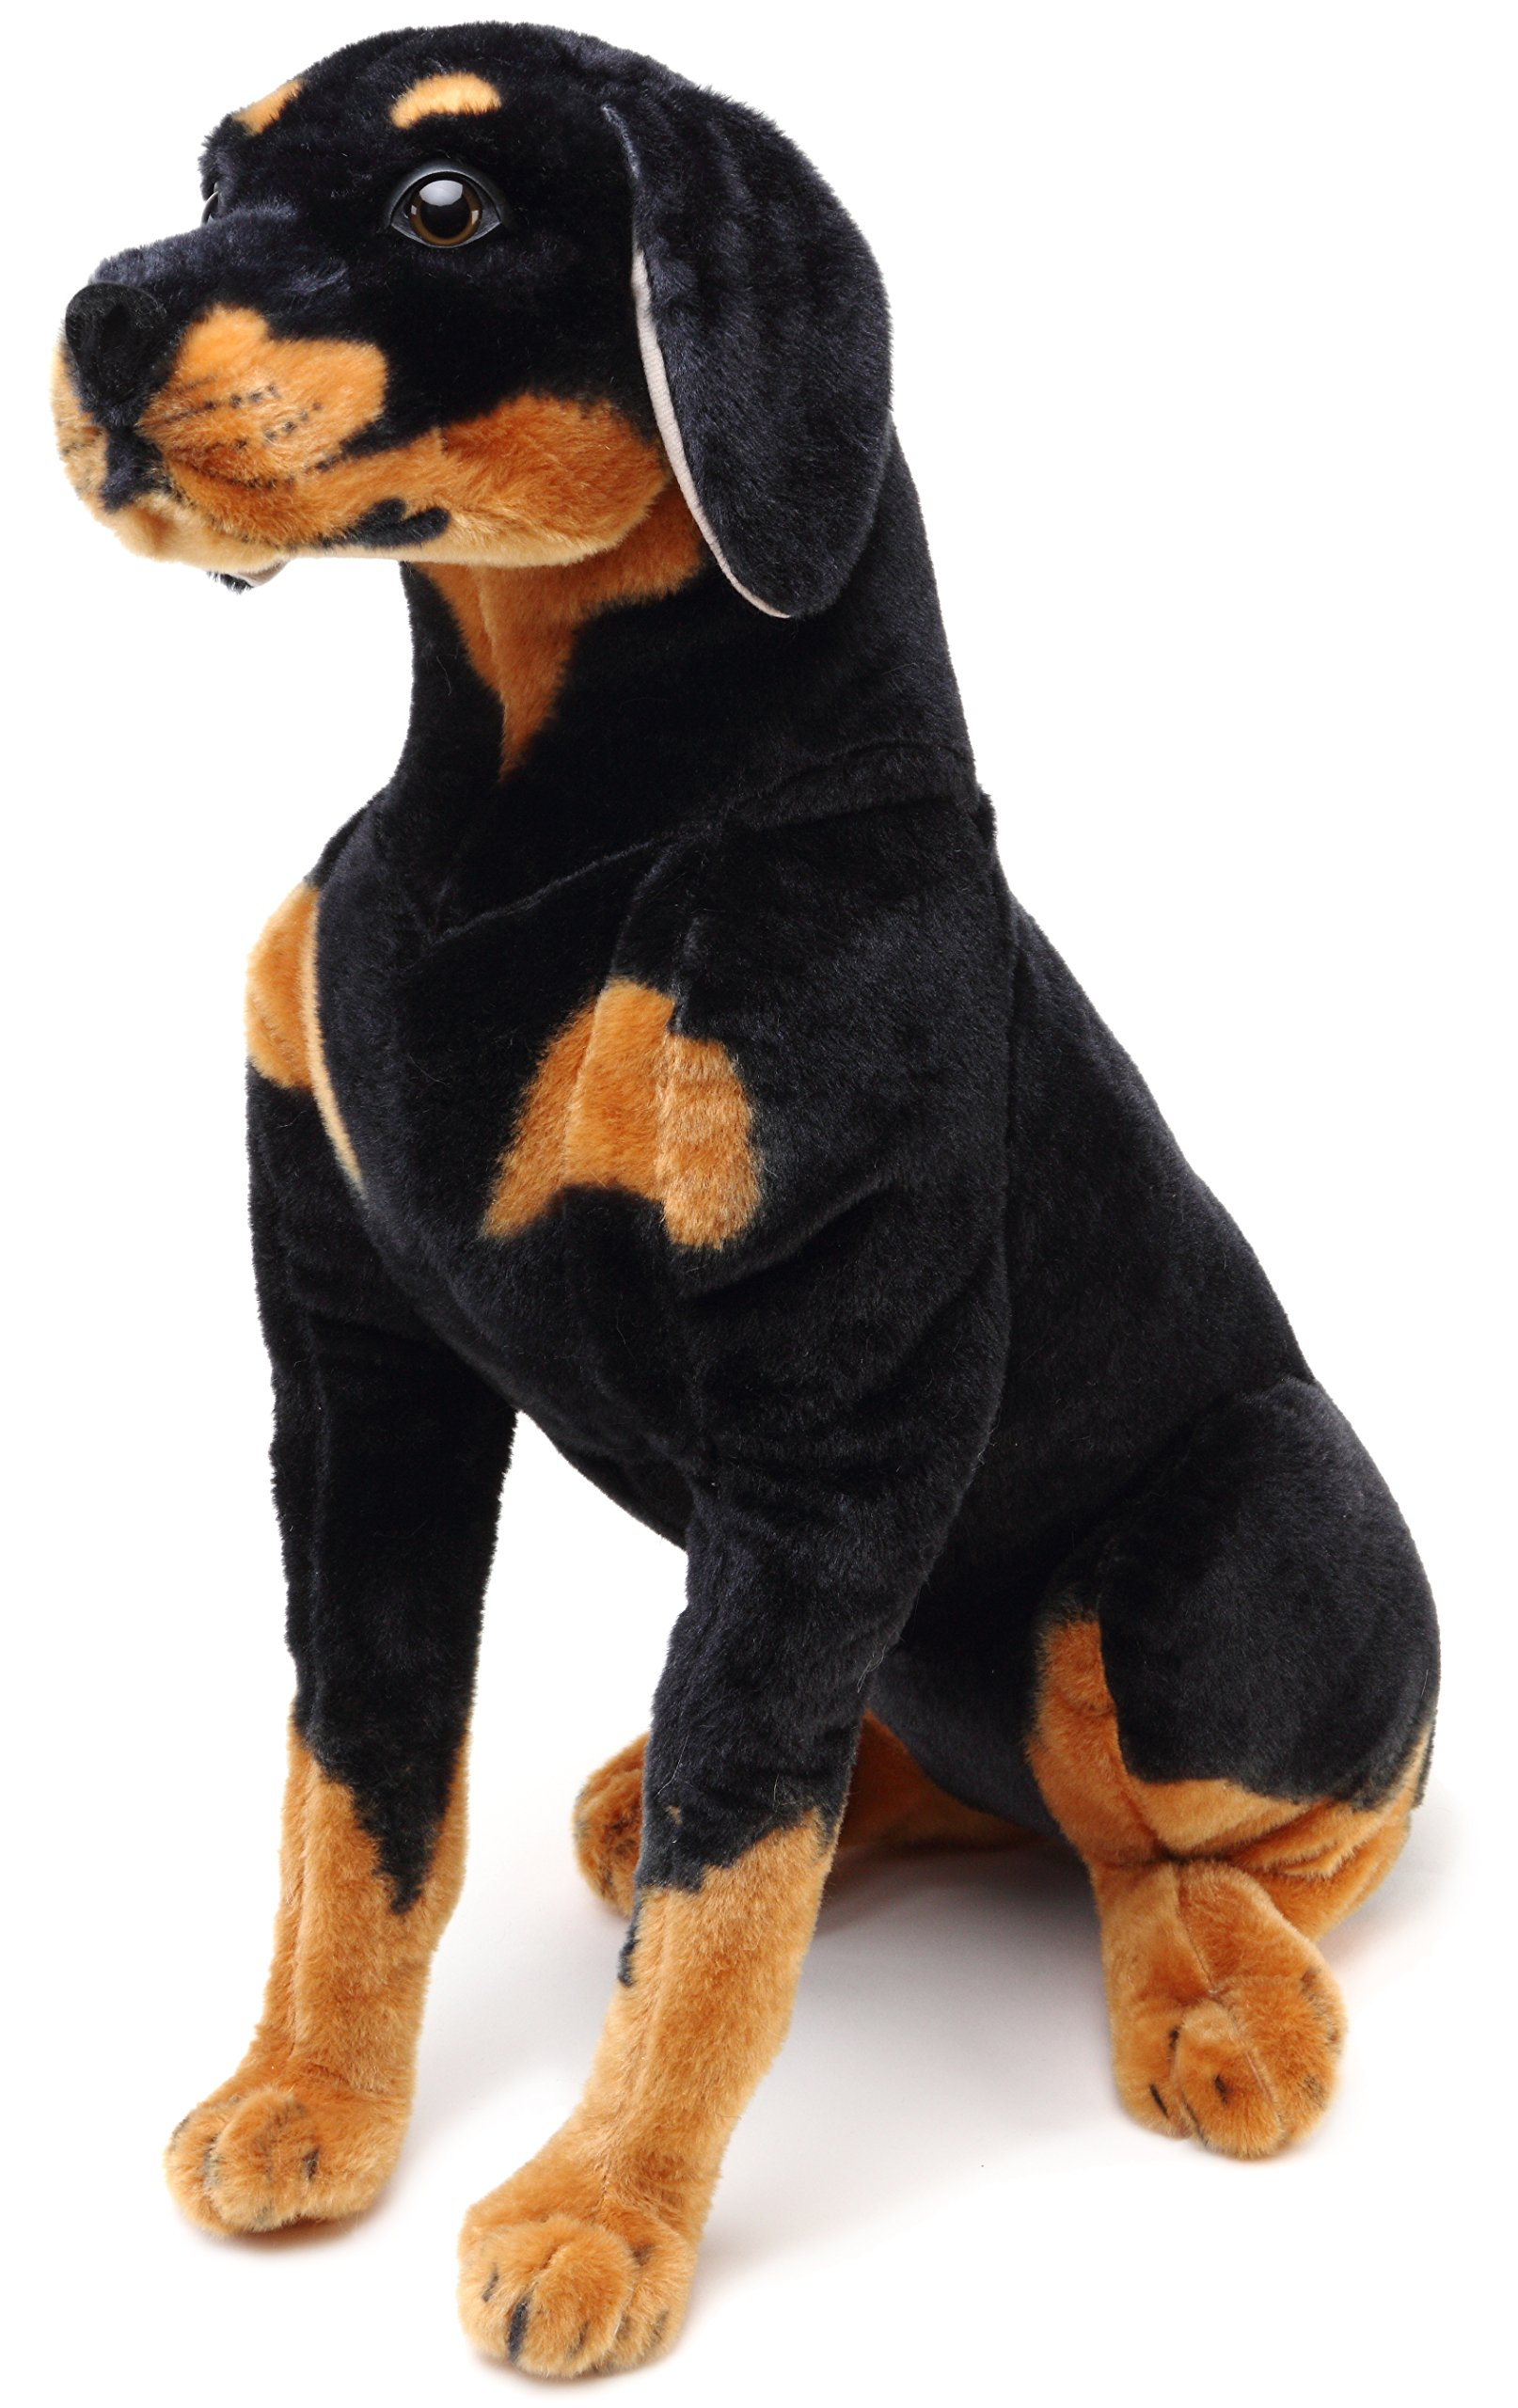 VIAHART Robbie The Rottweiler | Over 2 Foot Tall Stuffed Animal Plush Dog | Shipping from Texas | by Tiger Tale Toys by VIAHART